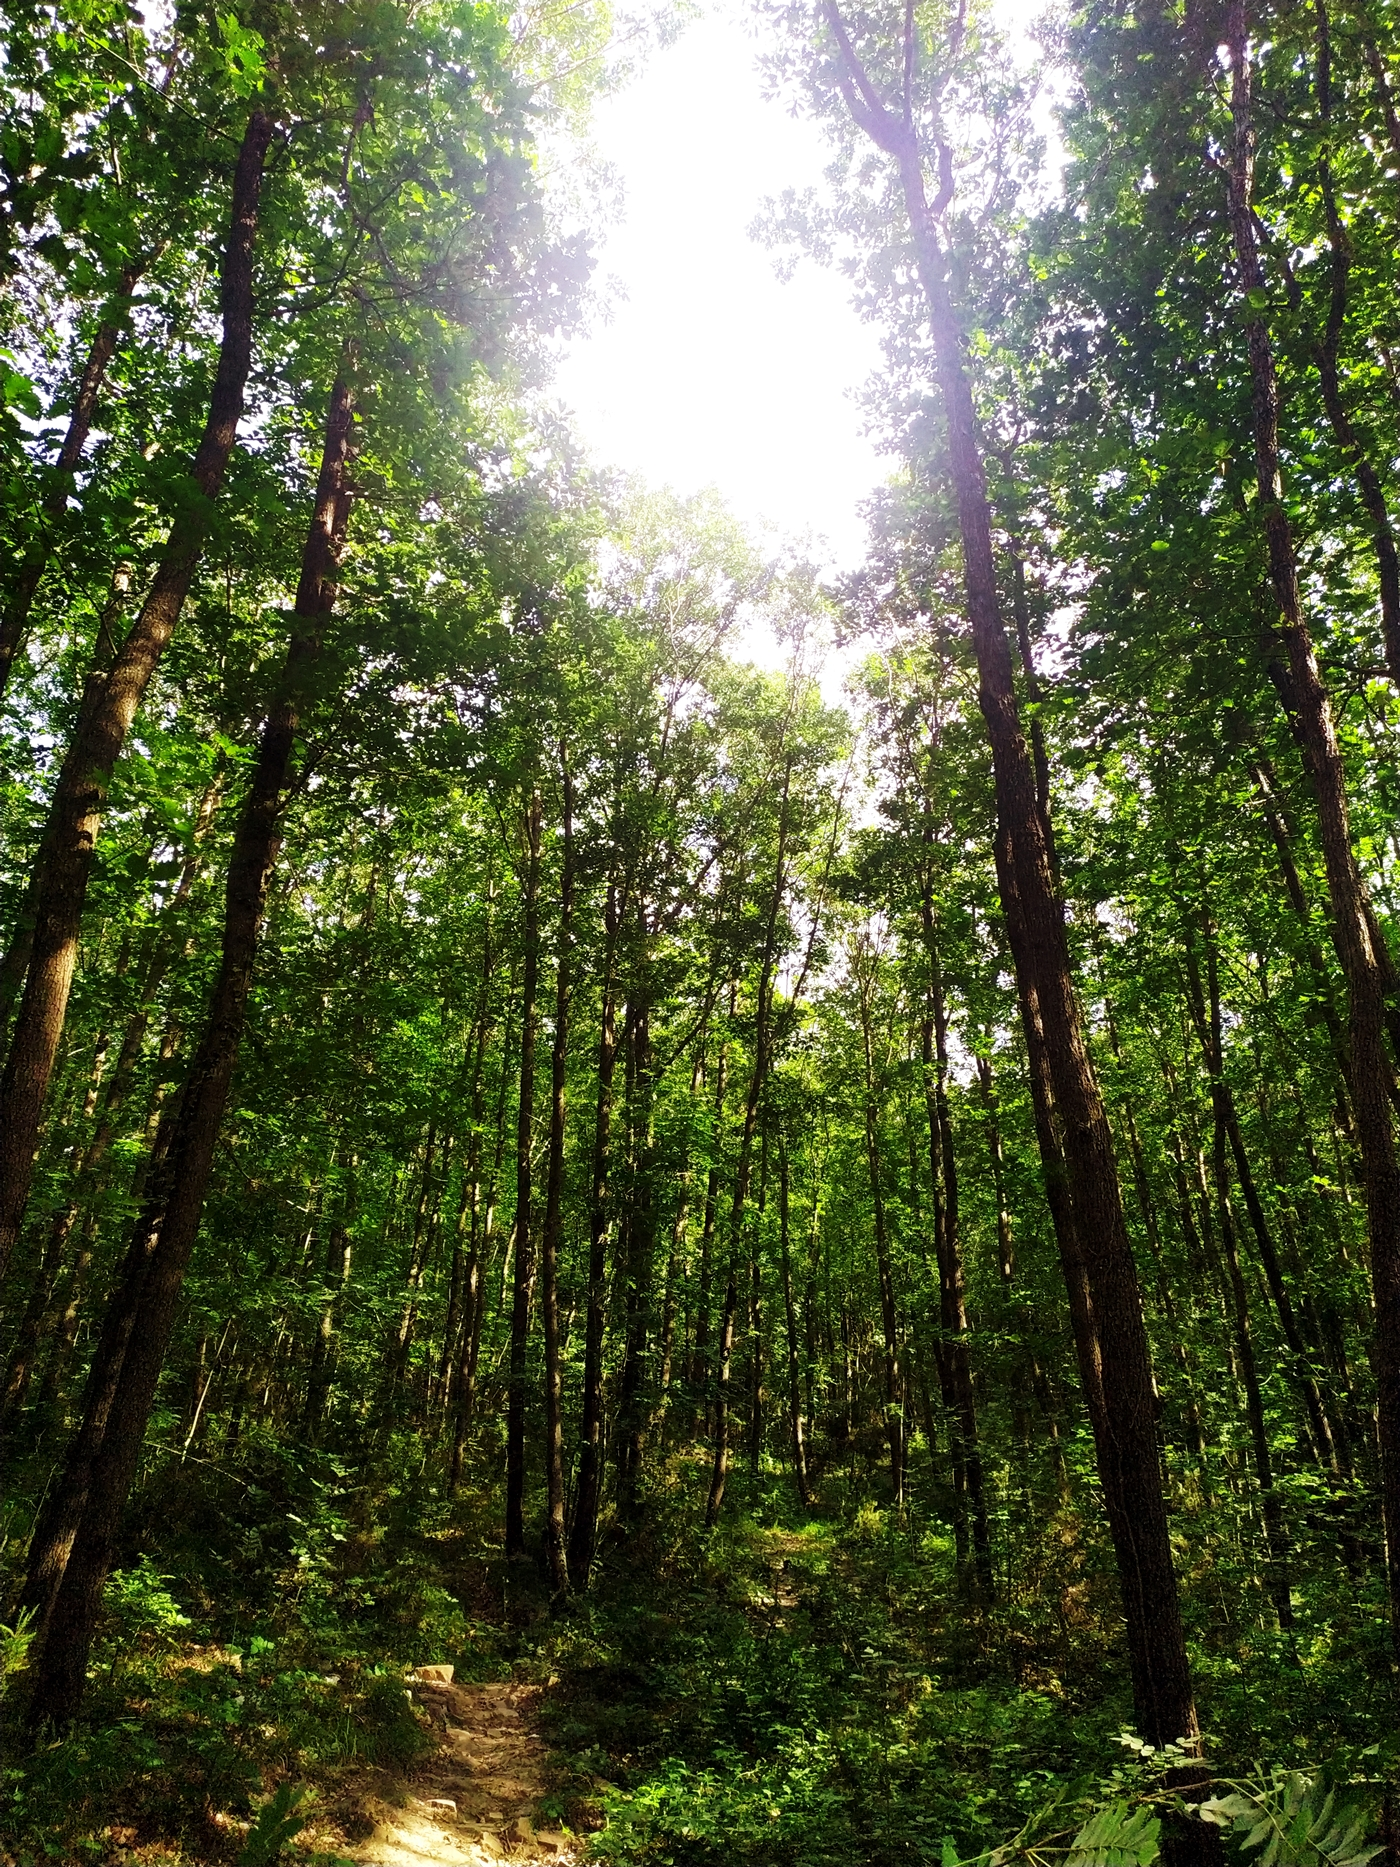 Forest, Tall Trees, Sunlight